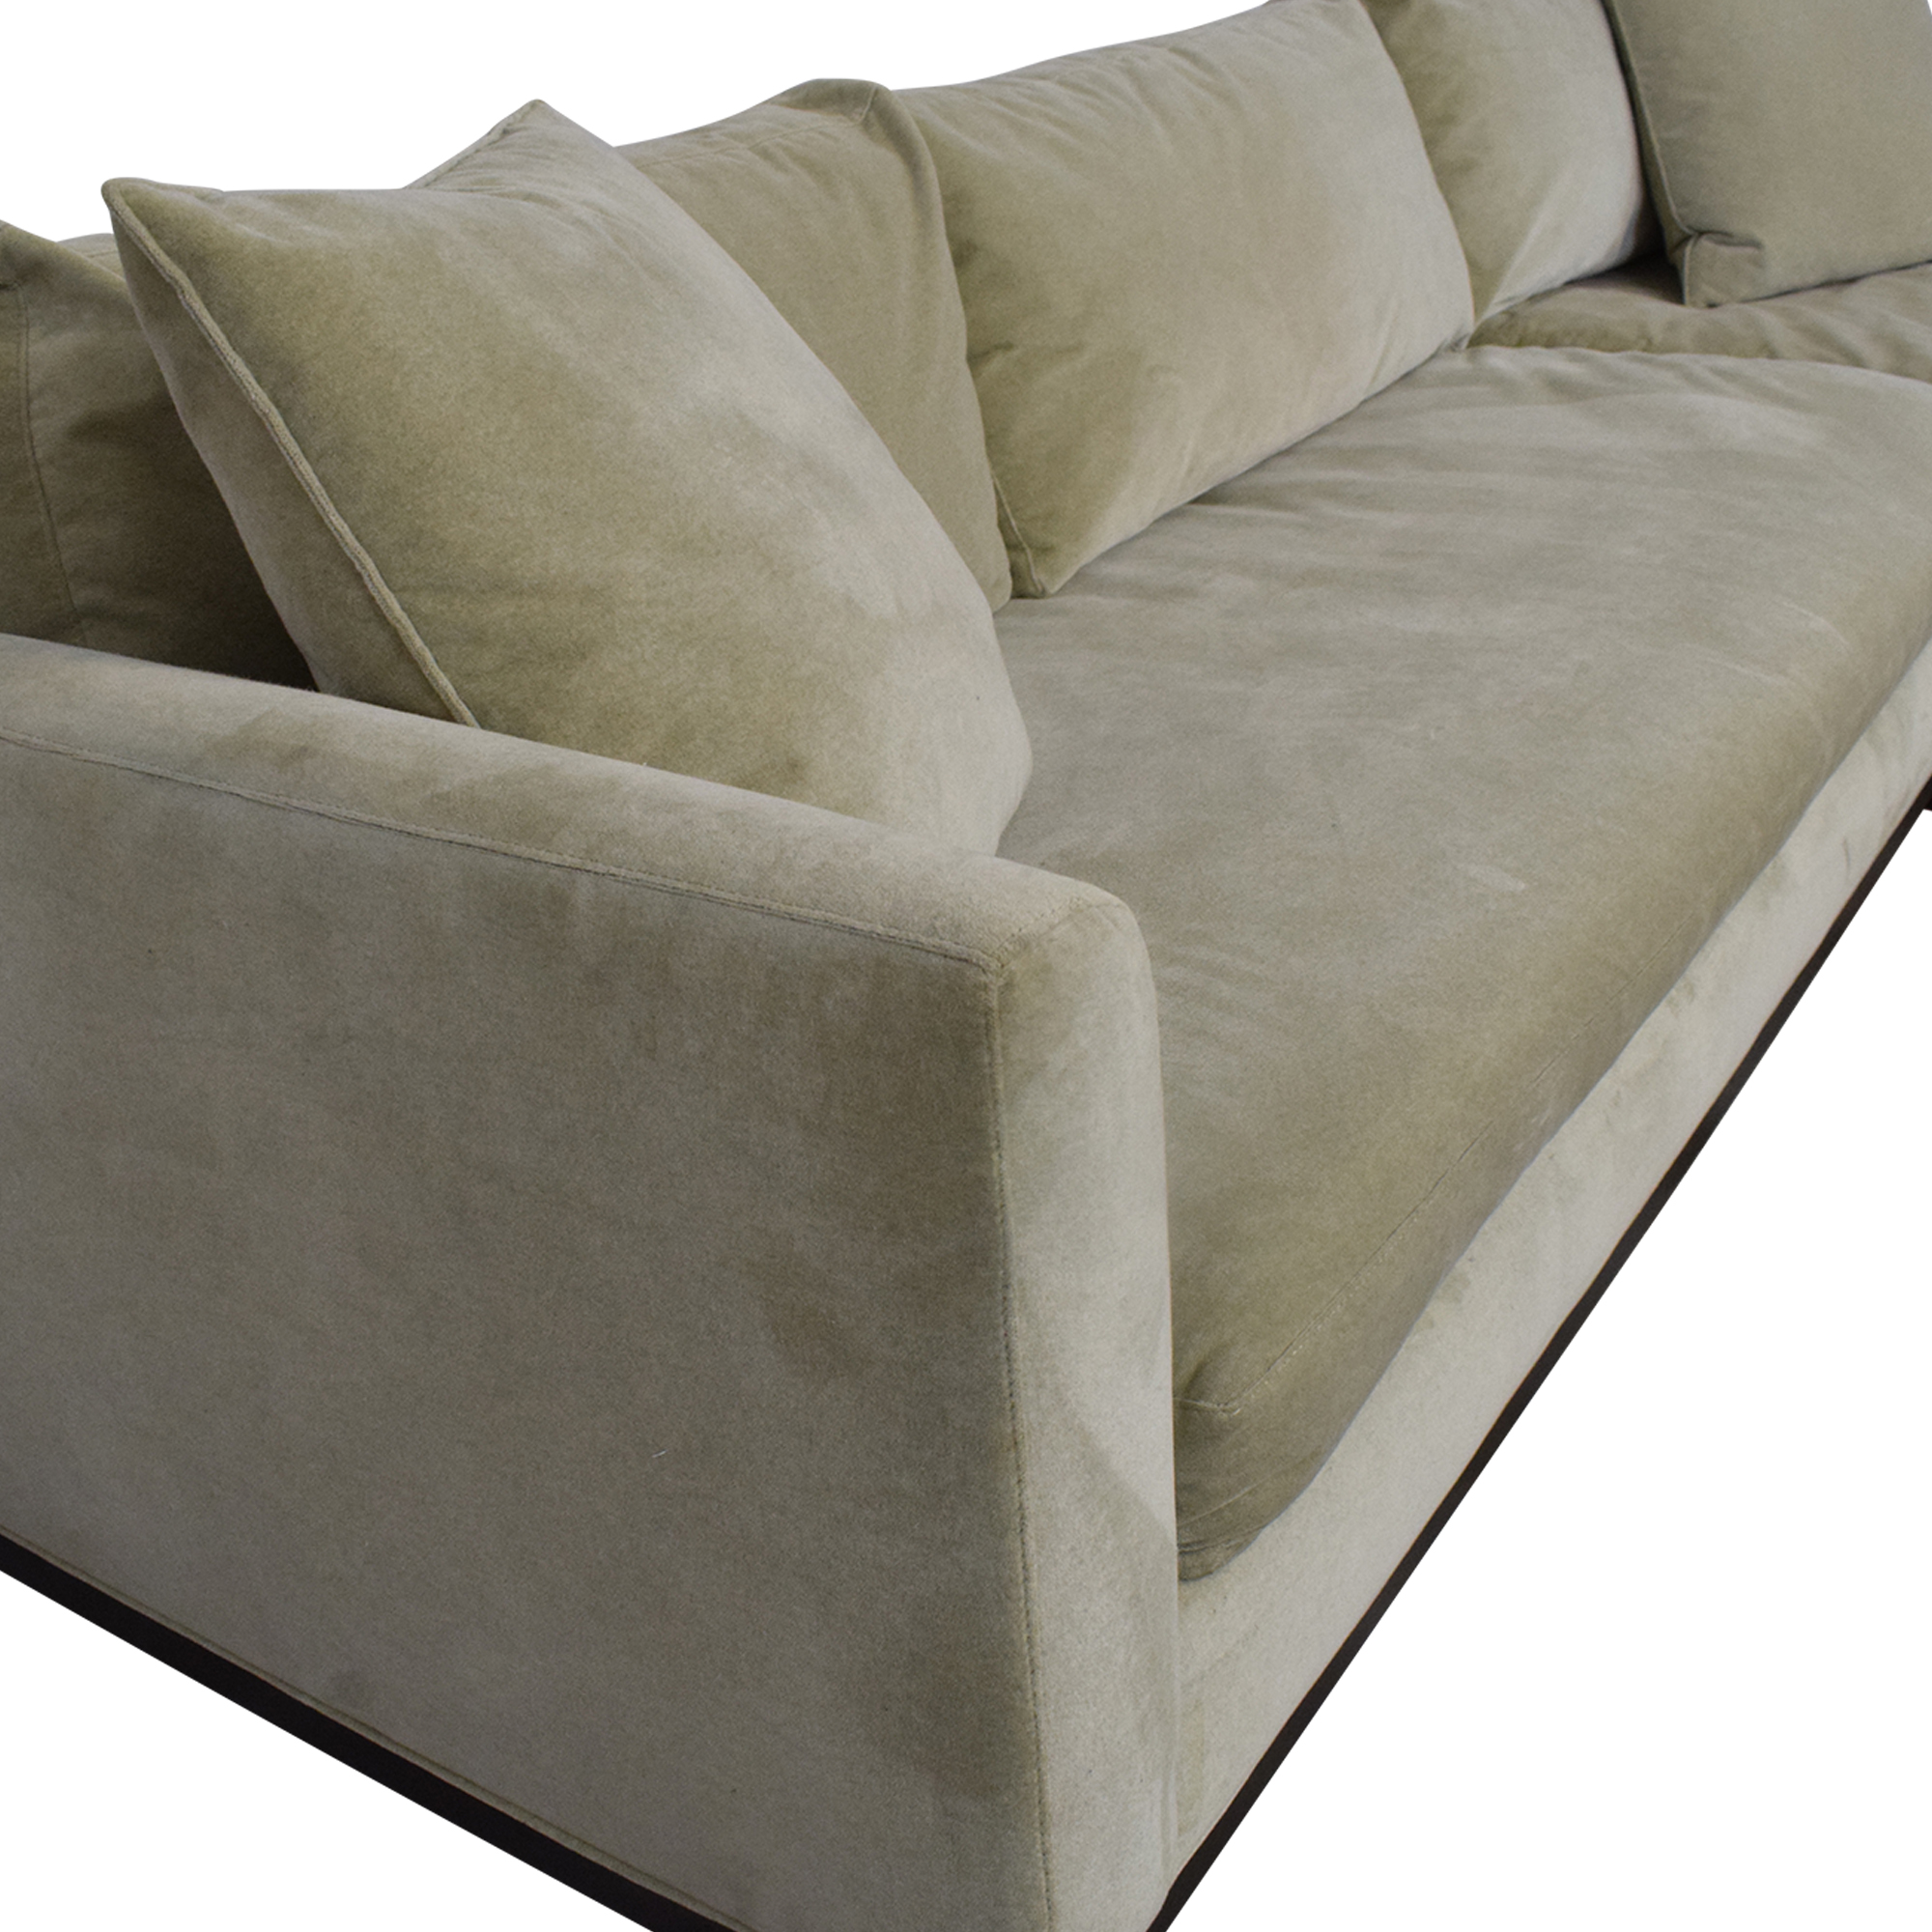 Cisco Brothers Tristan Sectional Sofa sale